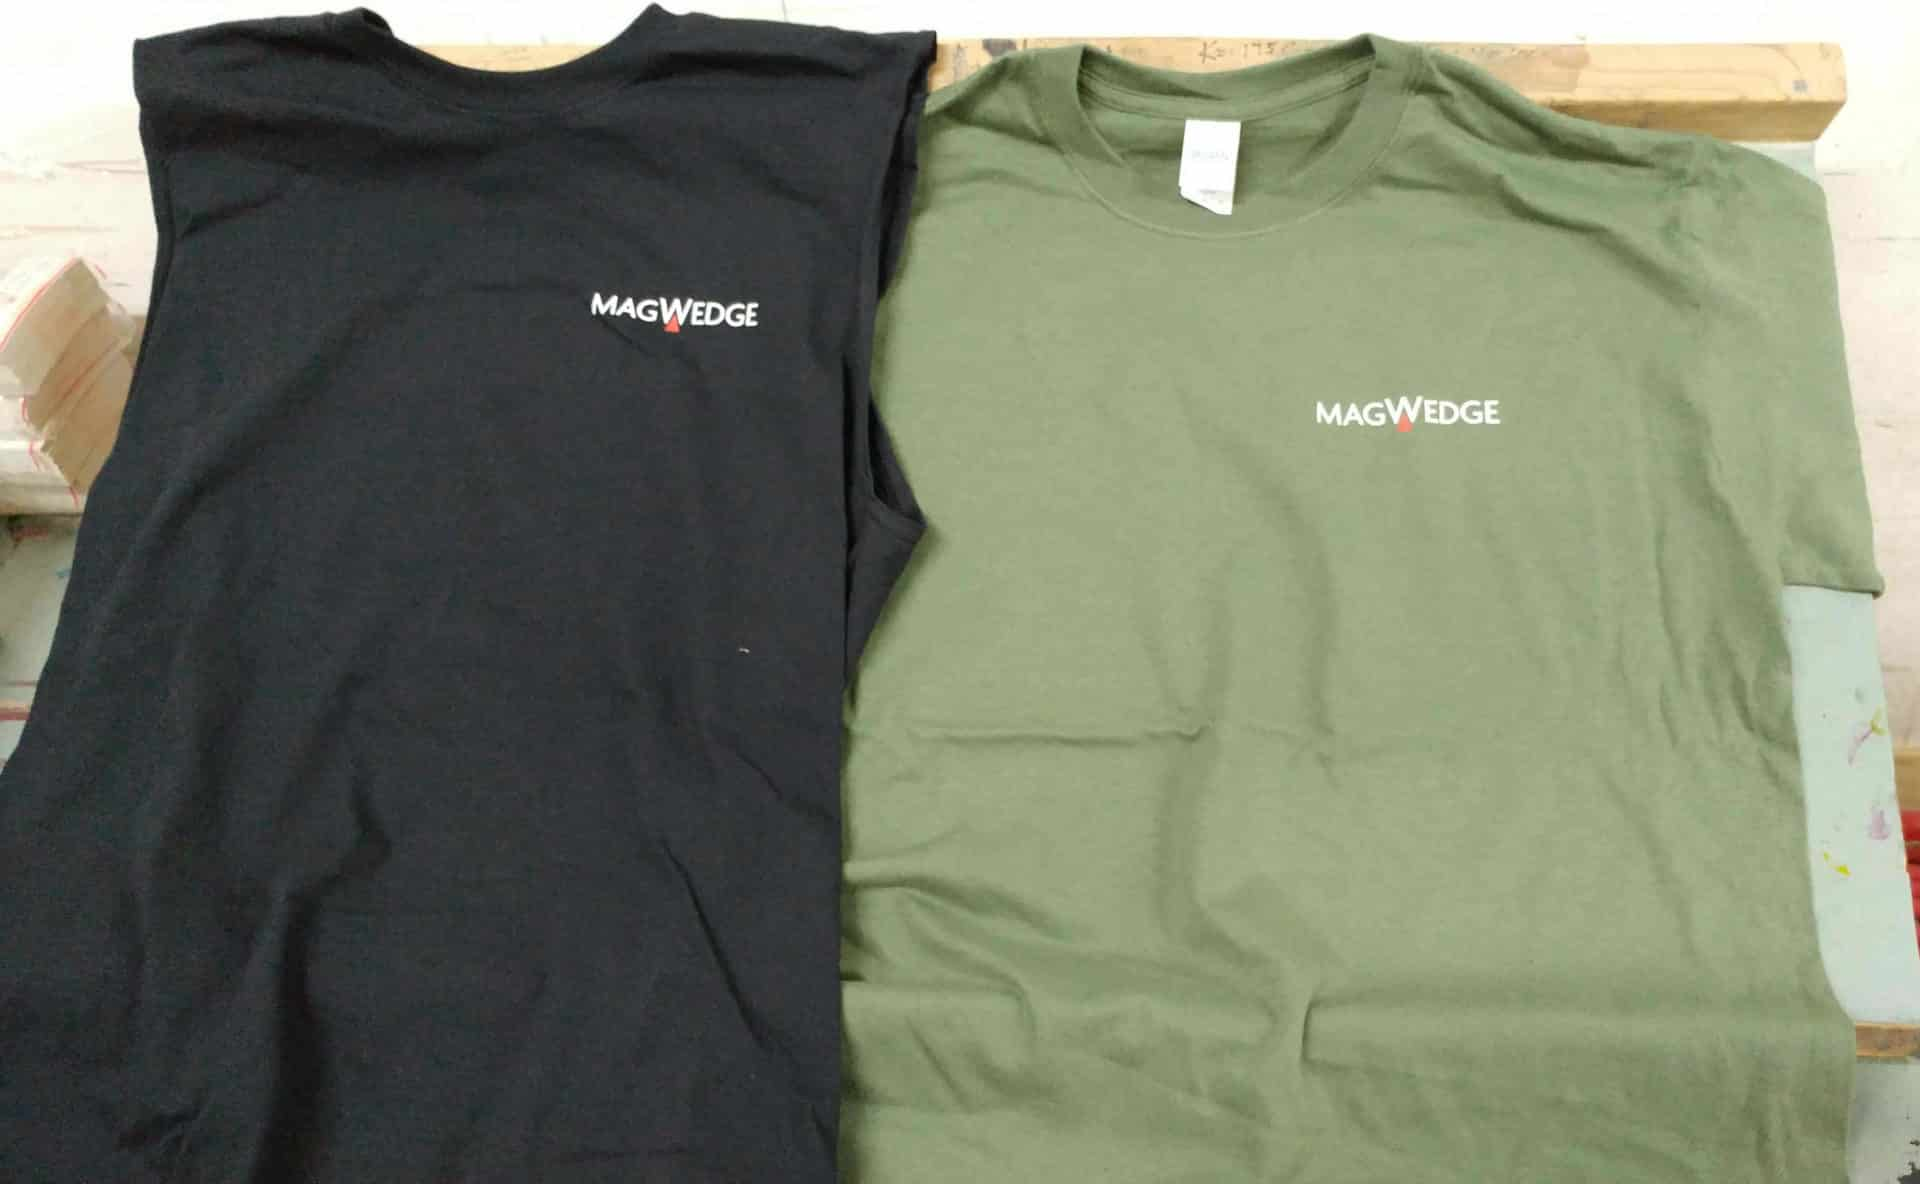 Magwedge Shirts